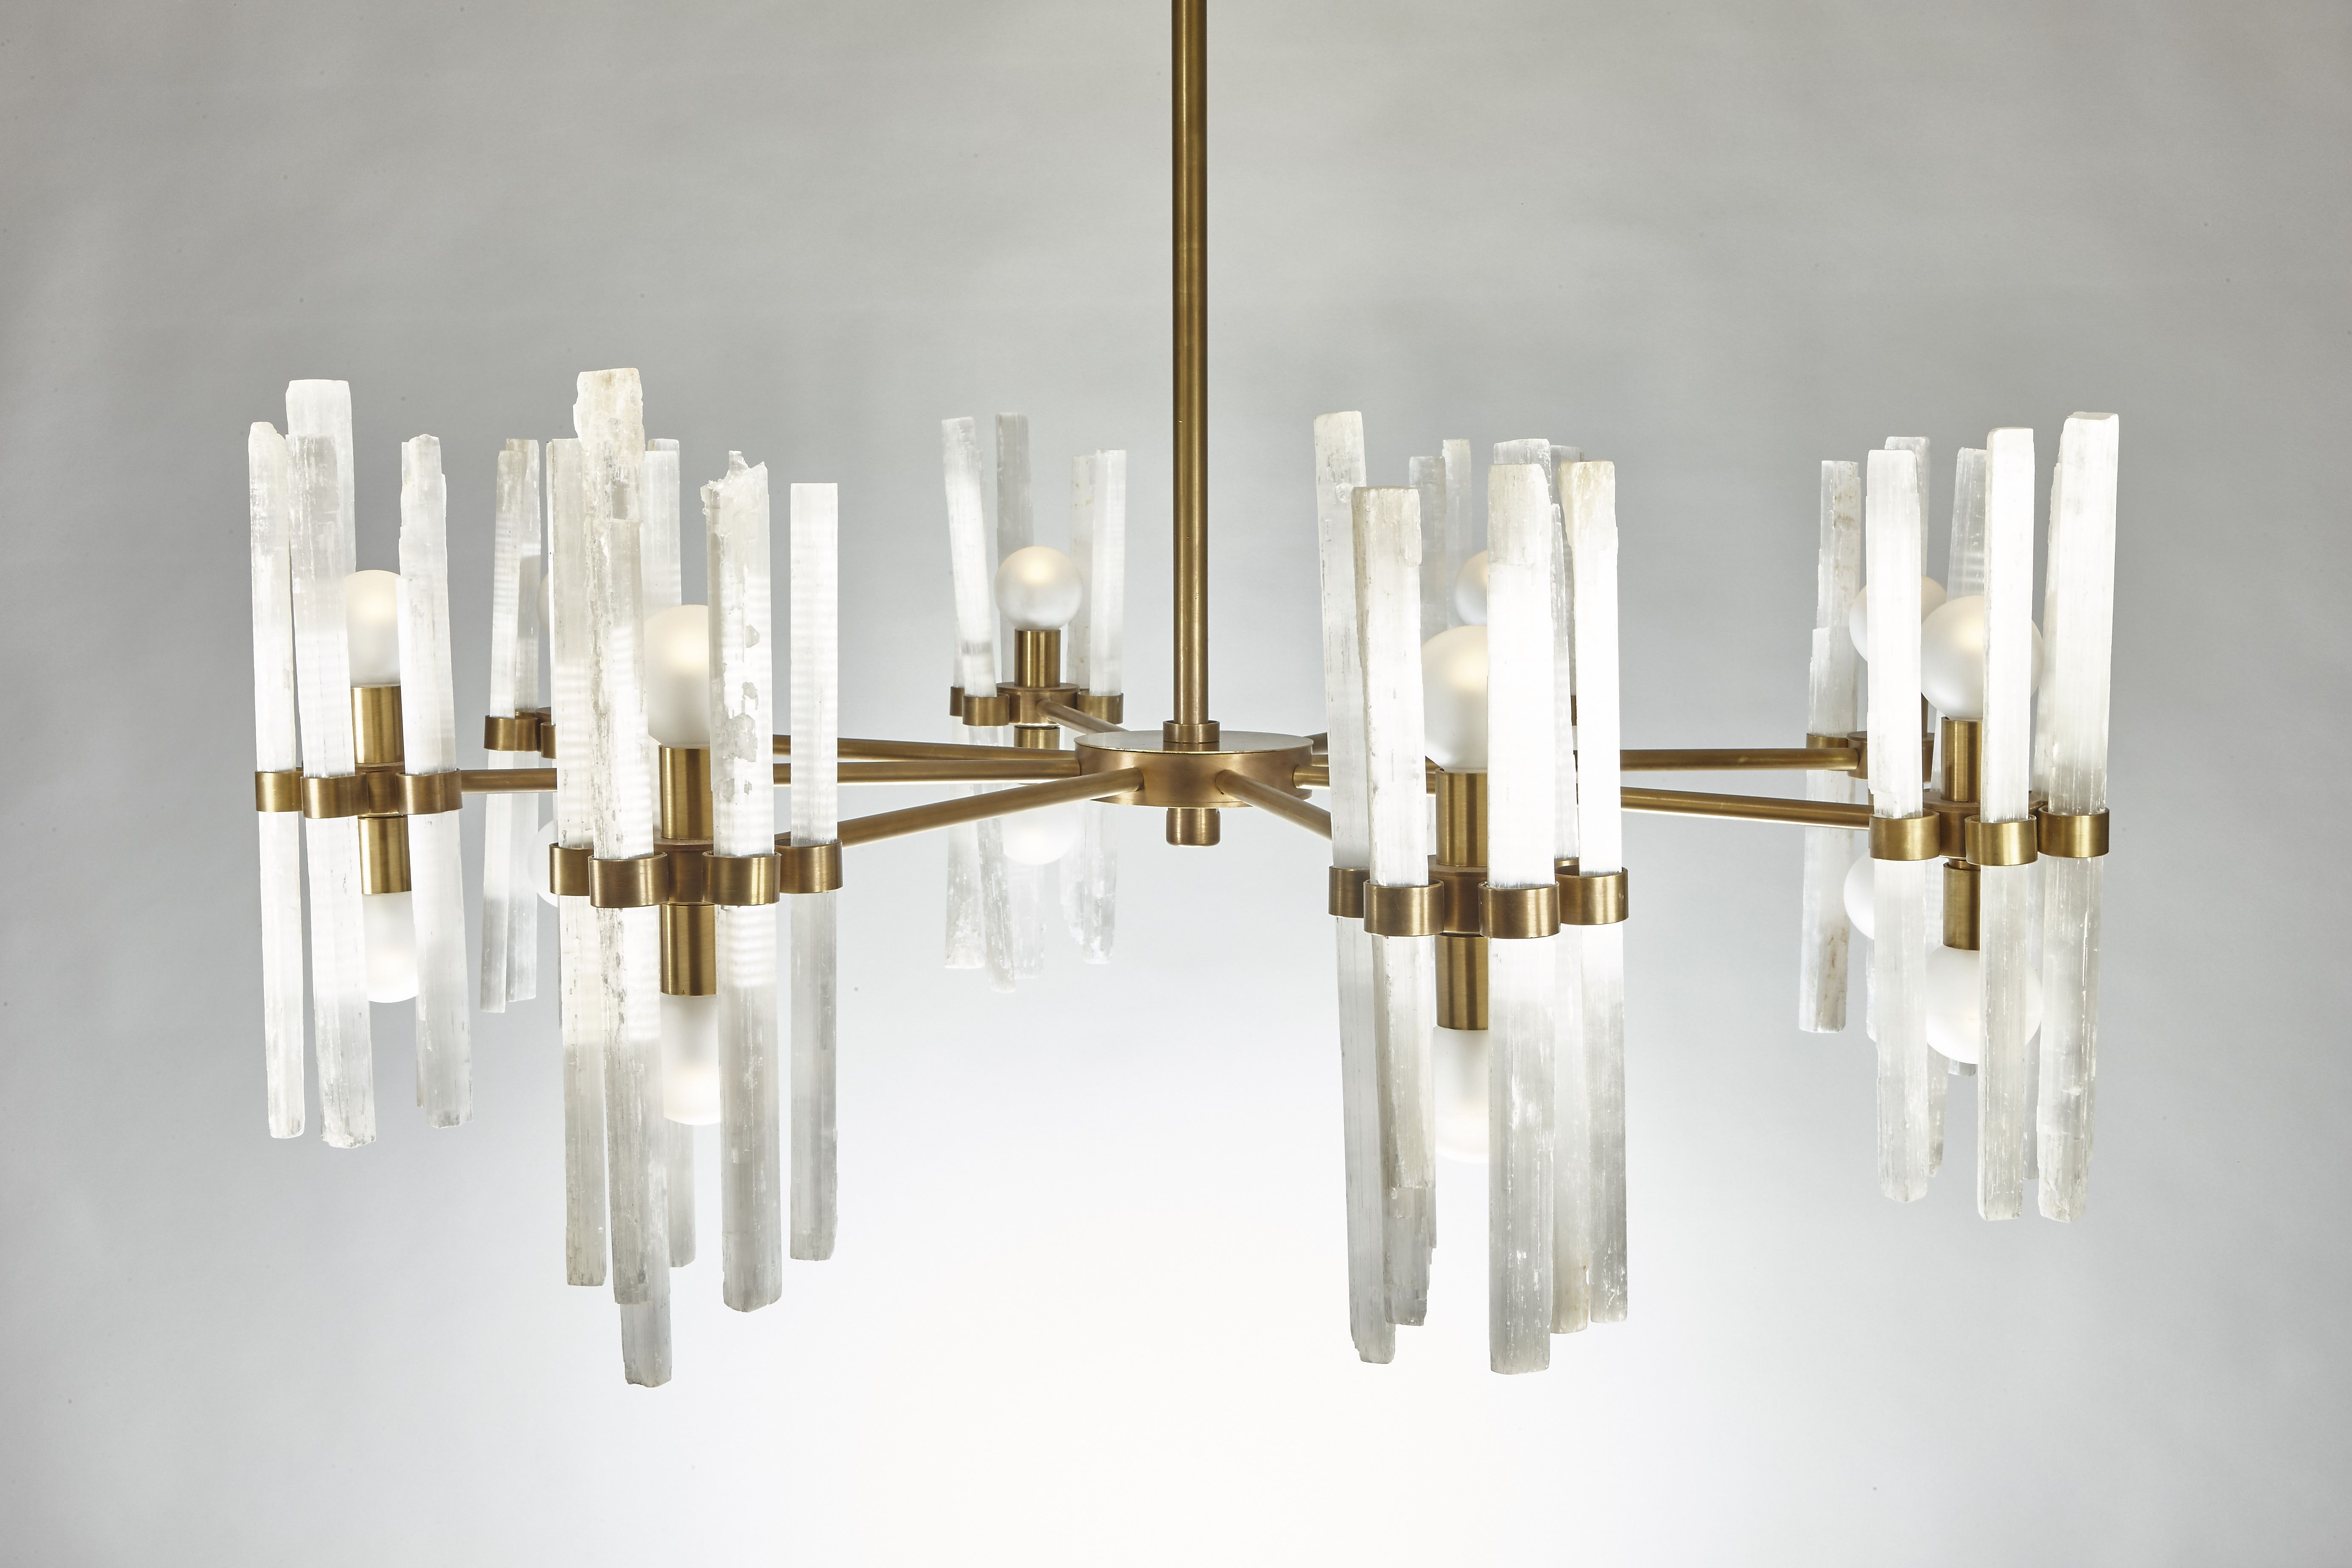 related clear light topaz smoke chandelier b french product with crystal and schonbek rock renaissancerock products renaissance gold in colors olivine